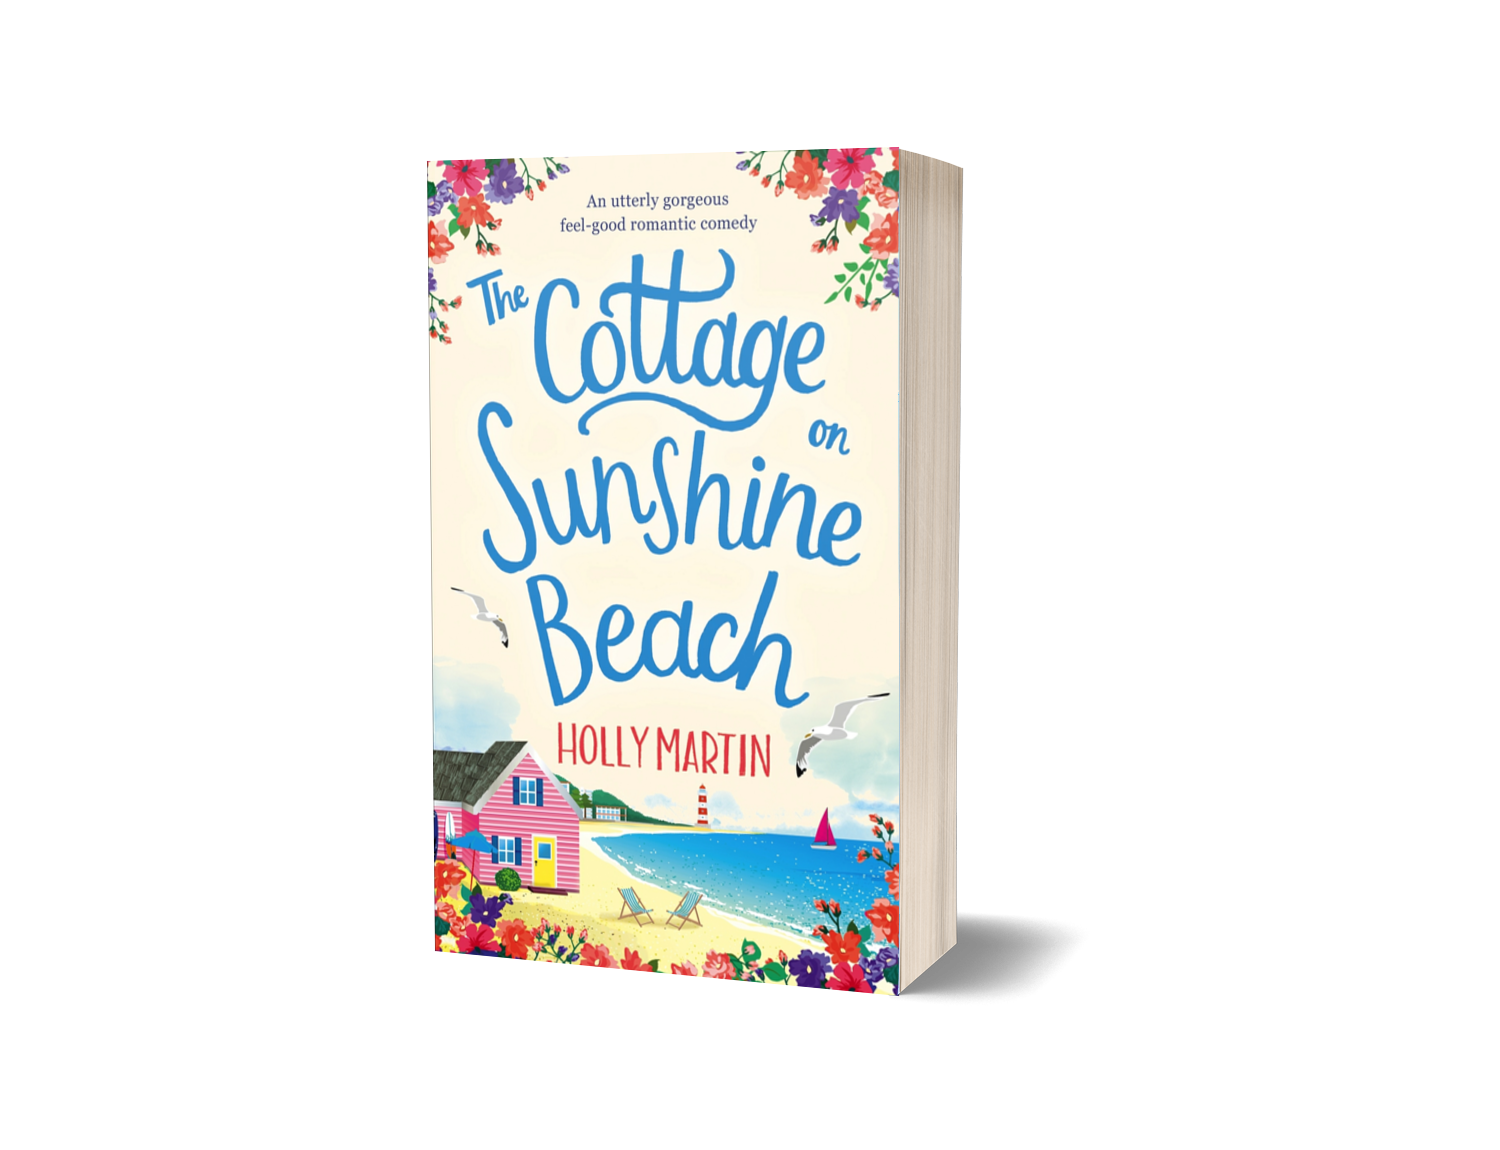 Image of Signed paperback of The Cottage on Sunshine Beach